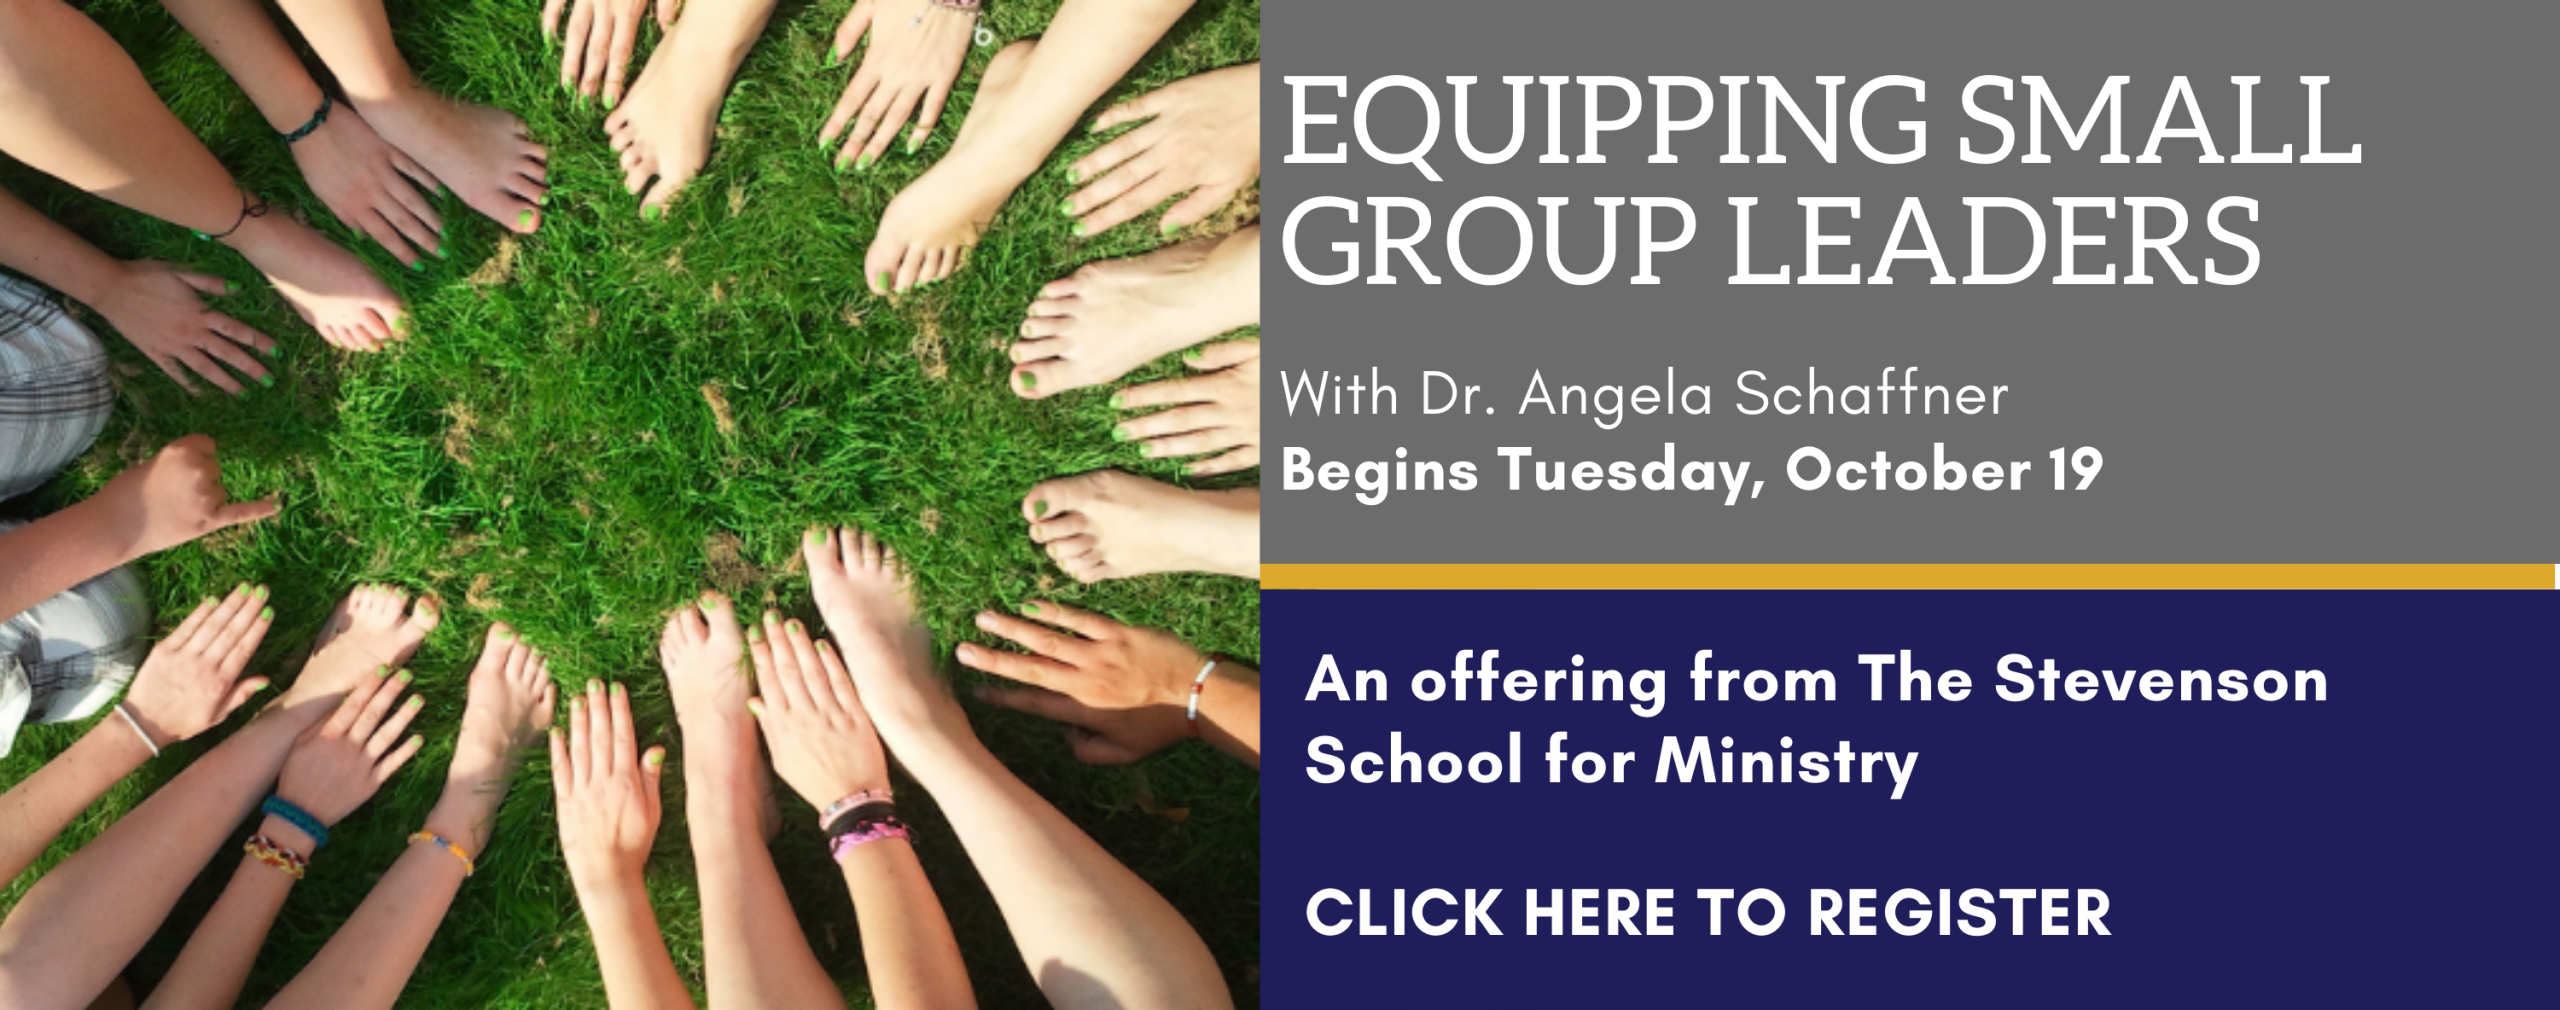 Equipping Small Group Leaders (2)